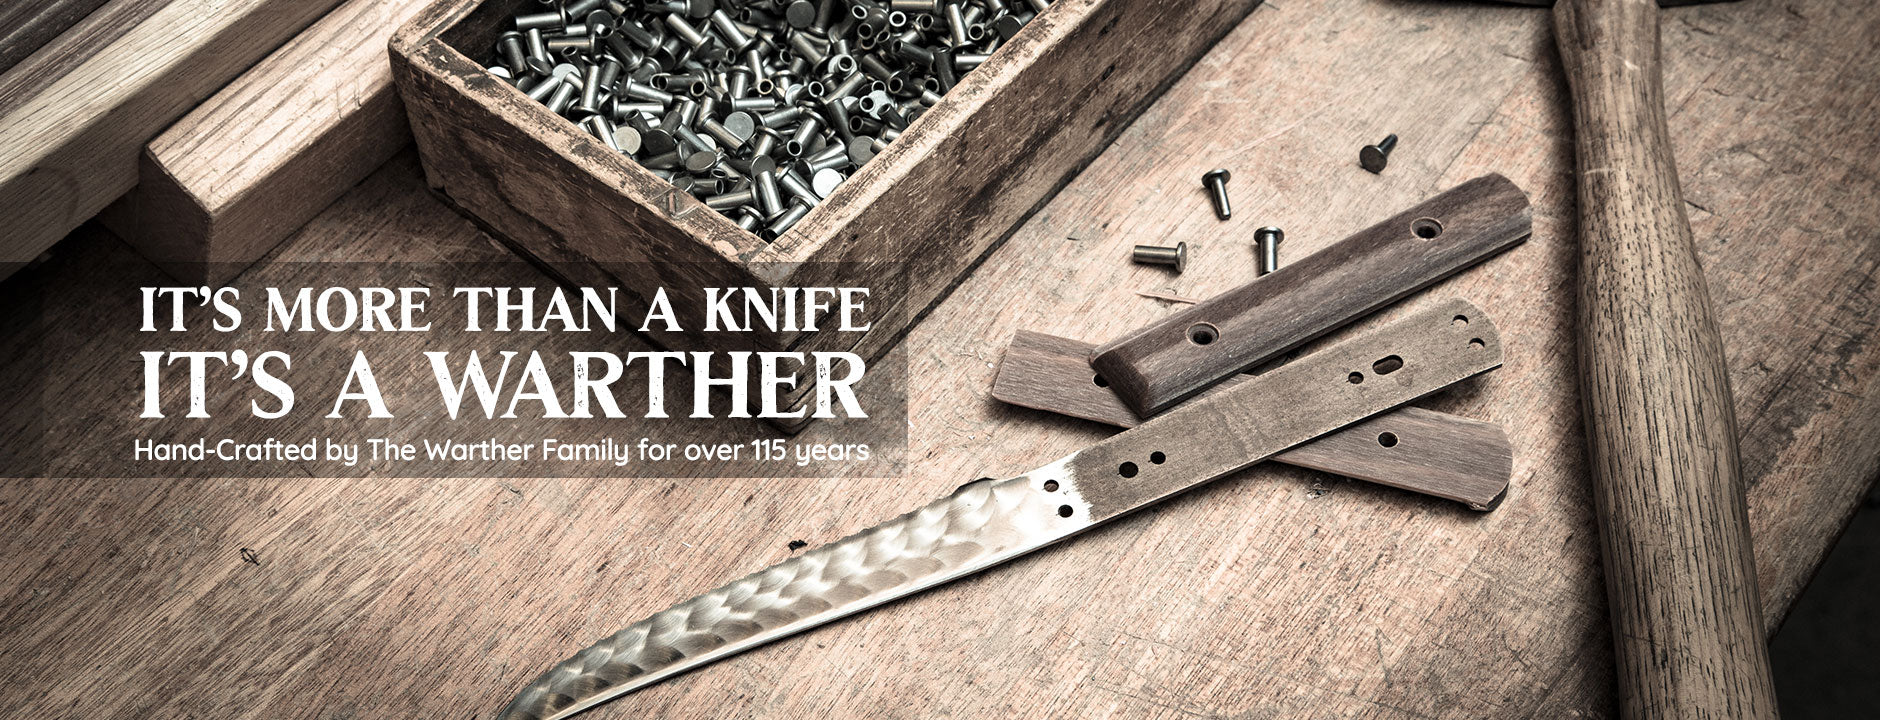 Warther Cutlery Hand Crafted Hand Made Kitchen Chef Knives